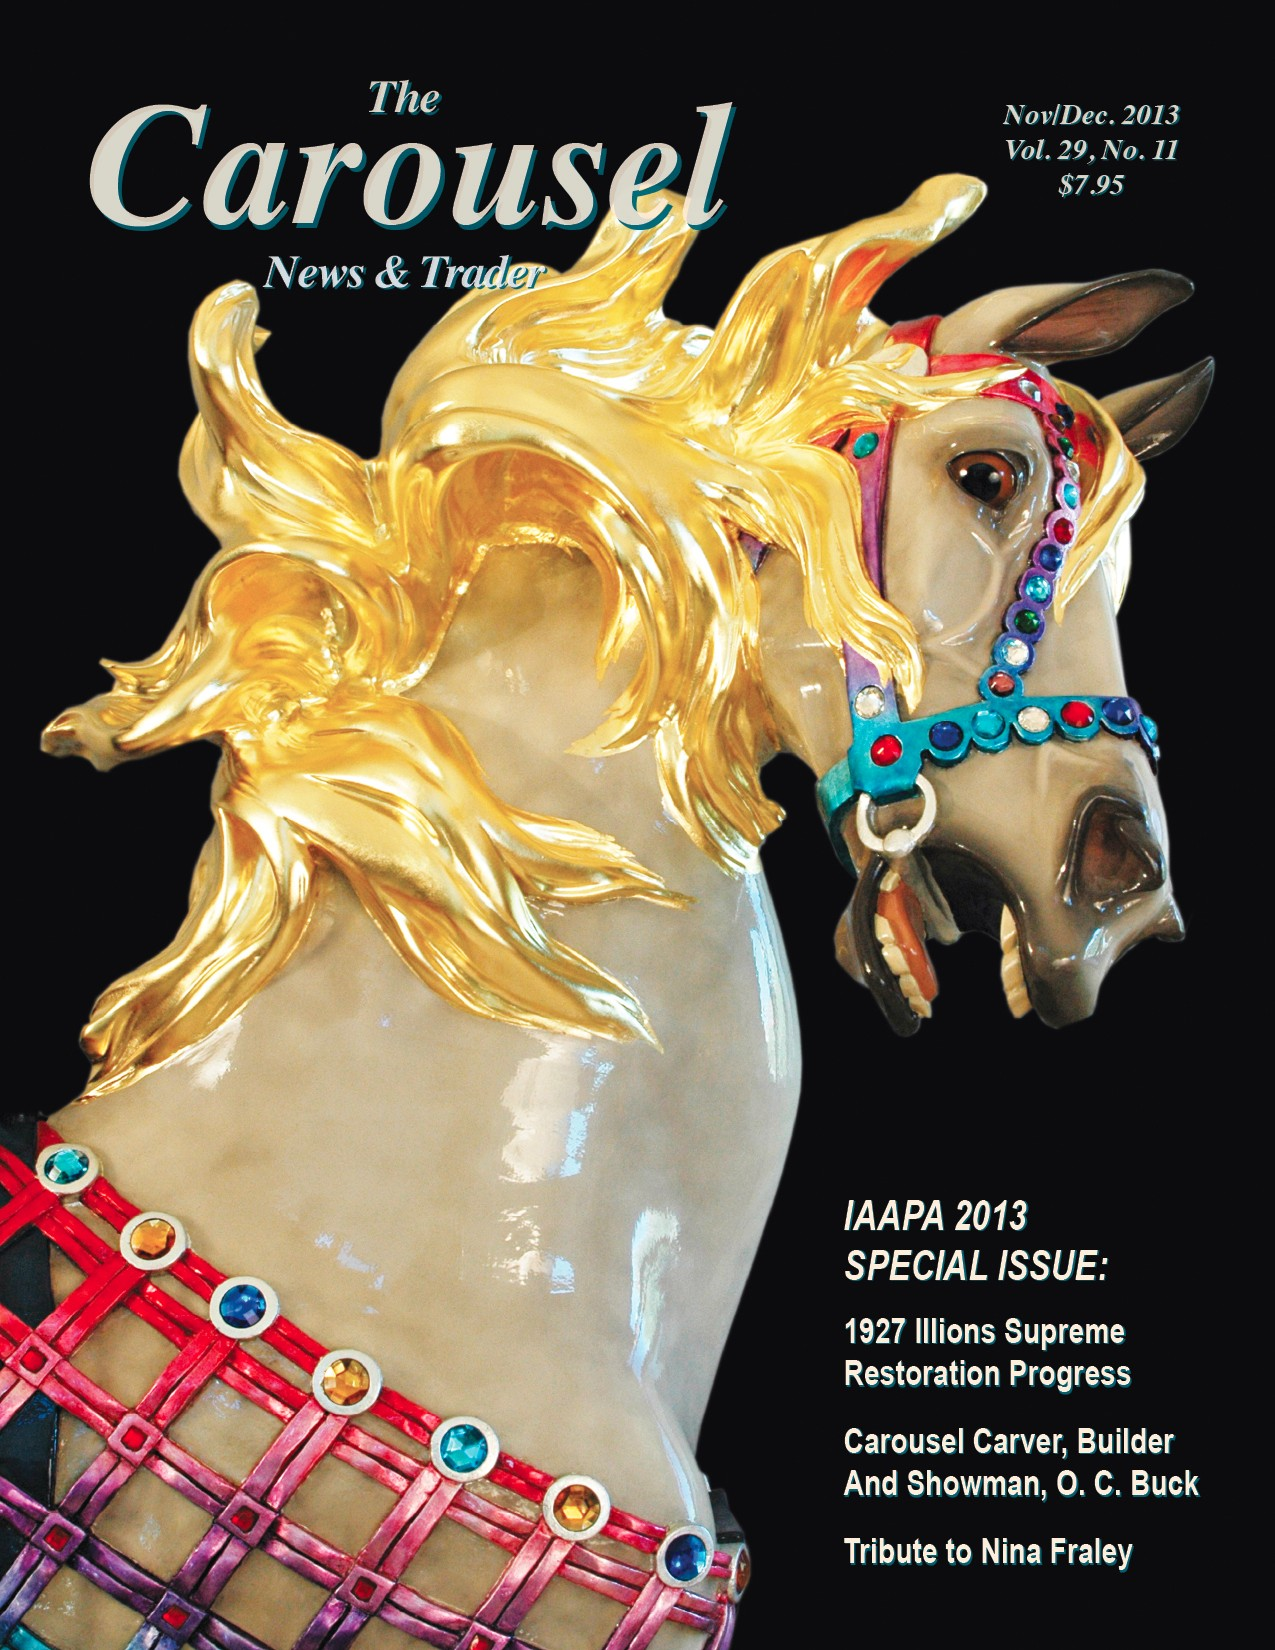 Carousel-news-cover-11-12-Restored-Illions-Supreme-carousel-horse-Nov-Dec-2013